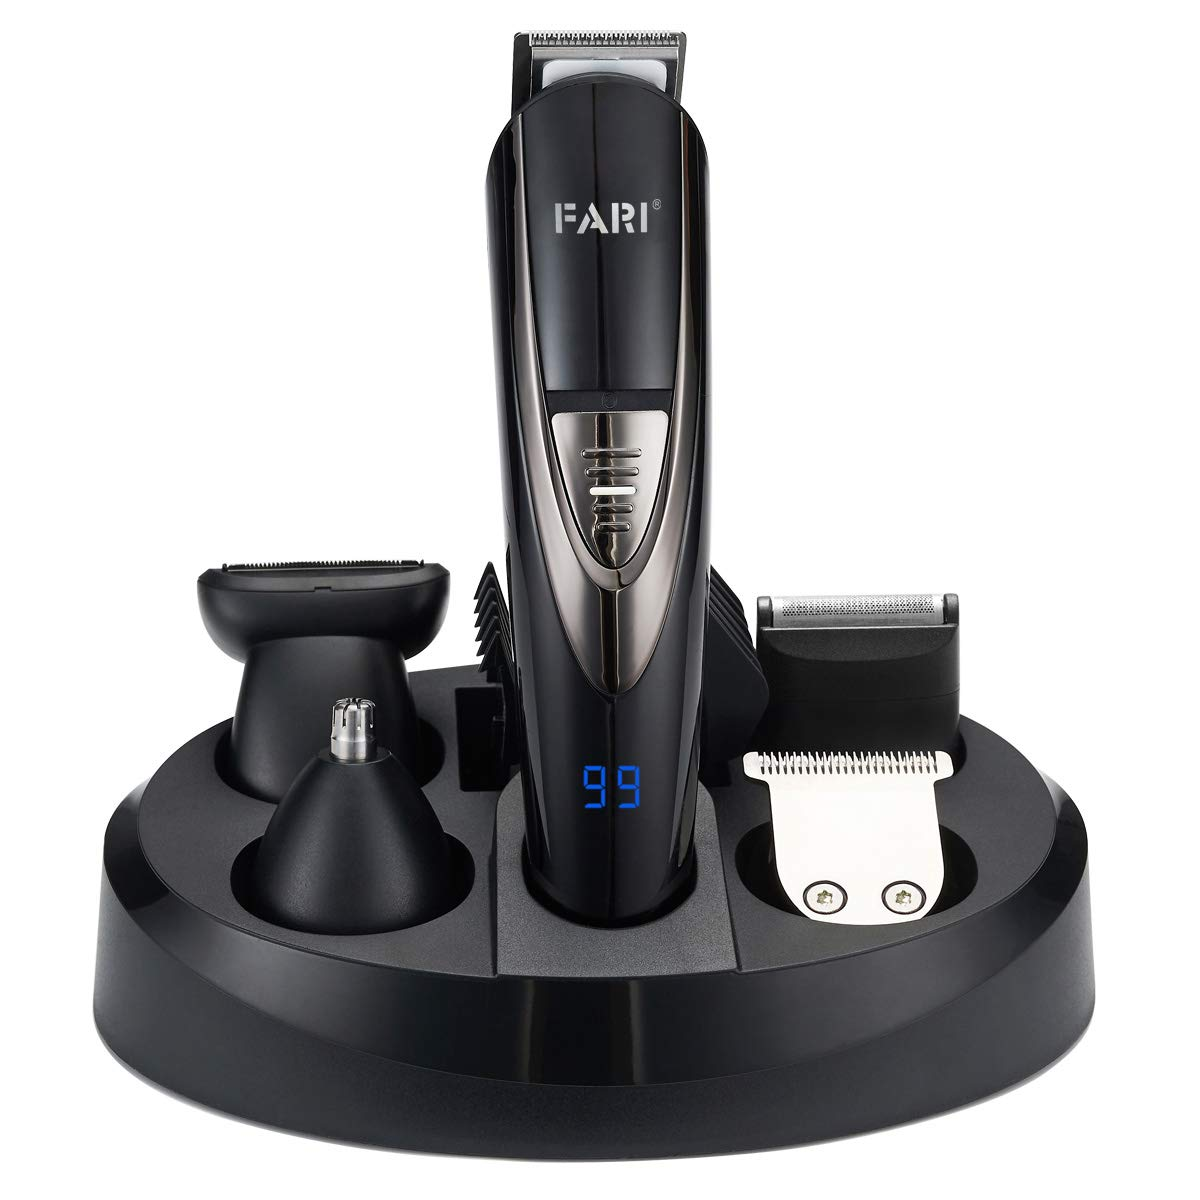 FARI Multifunctional Electric Beard Trimmer Set, Fully Washable Men s Grooming Kit, Professional Cordless Hair Clipper for Men and Mustache Nose Trimmers Shaver Suit Black Silver